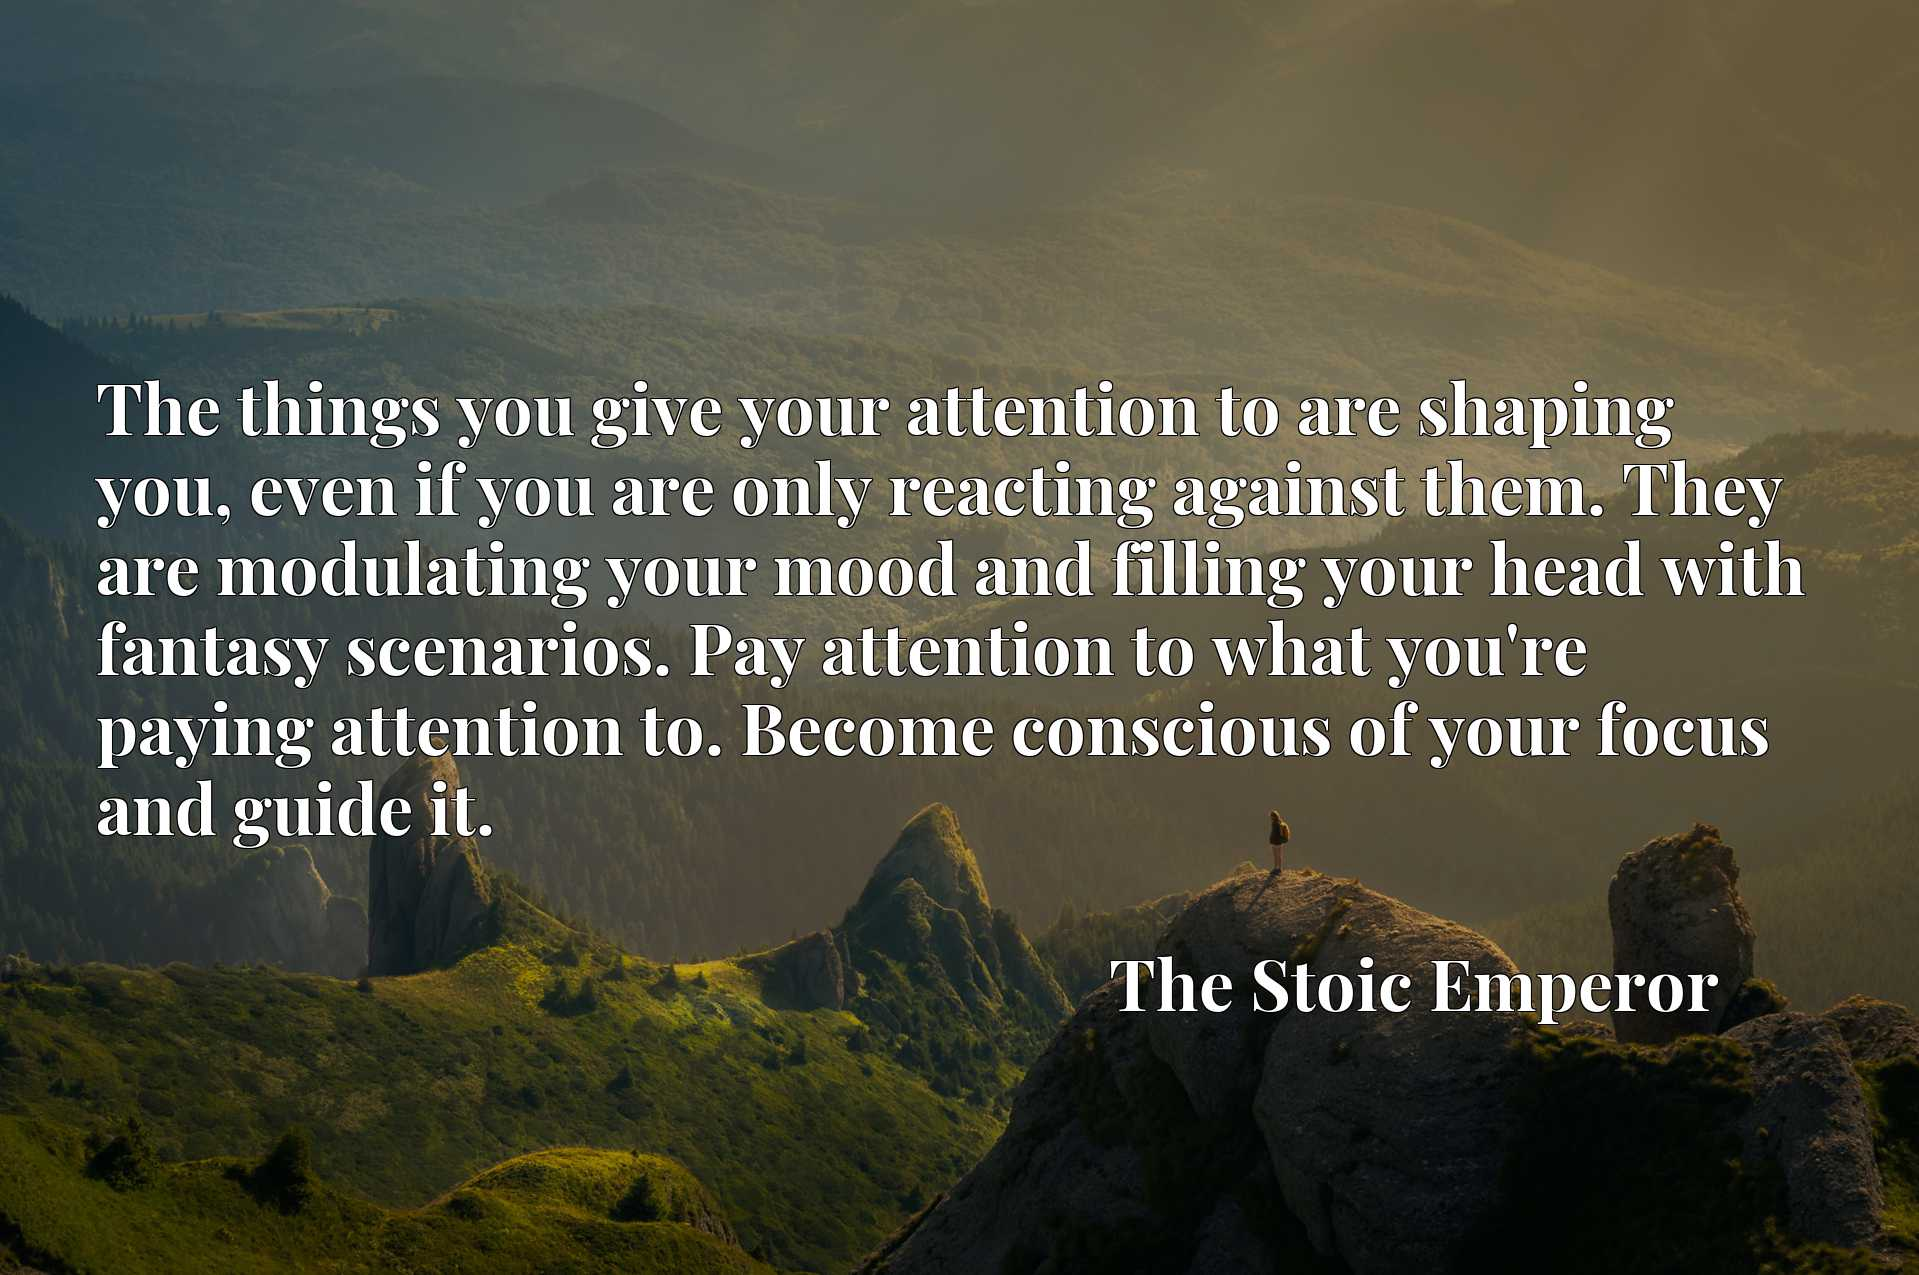 The things you give your attention to are shaping you, even if you are only reacting against them. They are modulating your mood and filling your head with fantasy scenarios. Pay attention to what you're paying attention to. Become conscious of your focus and guide it.